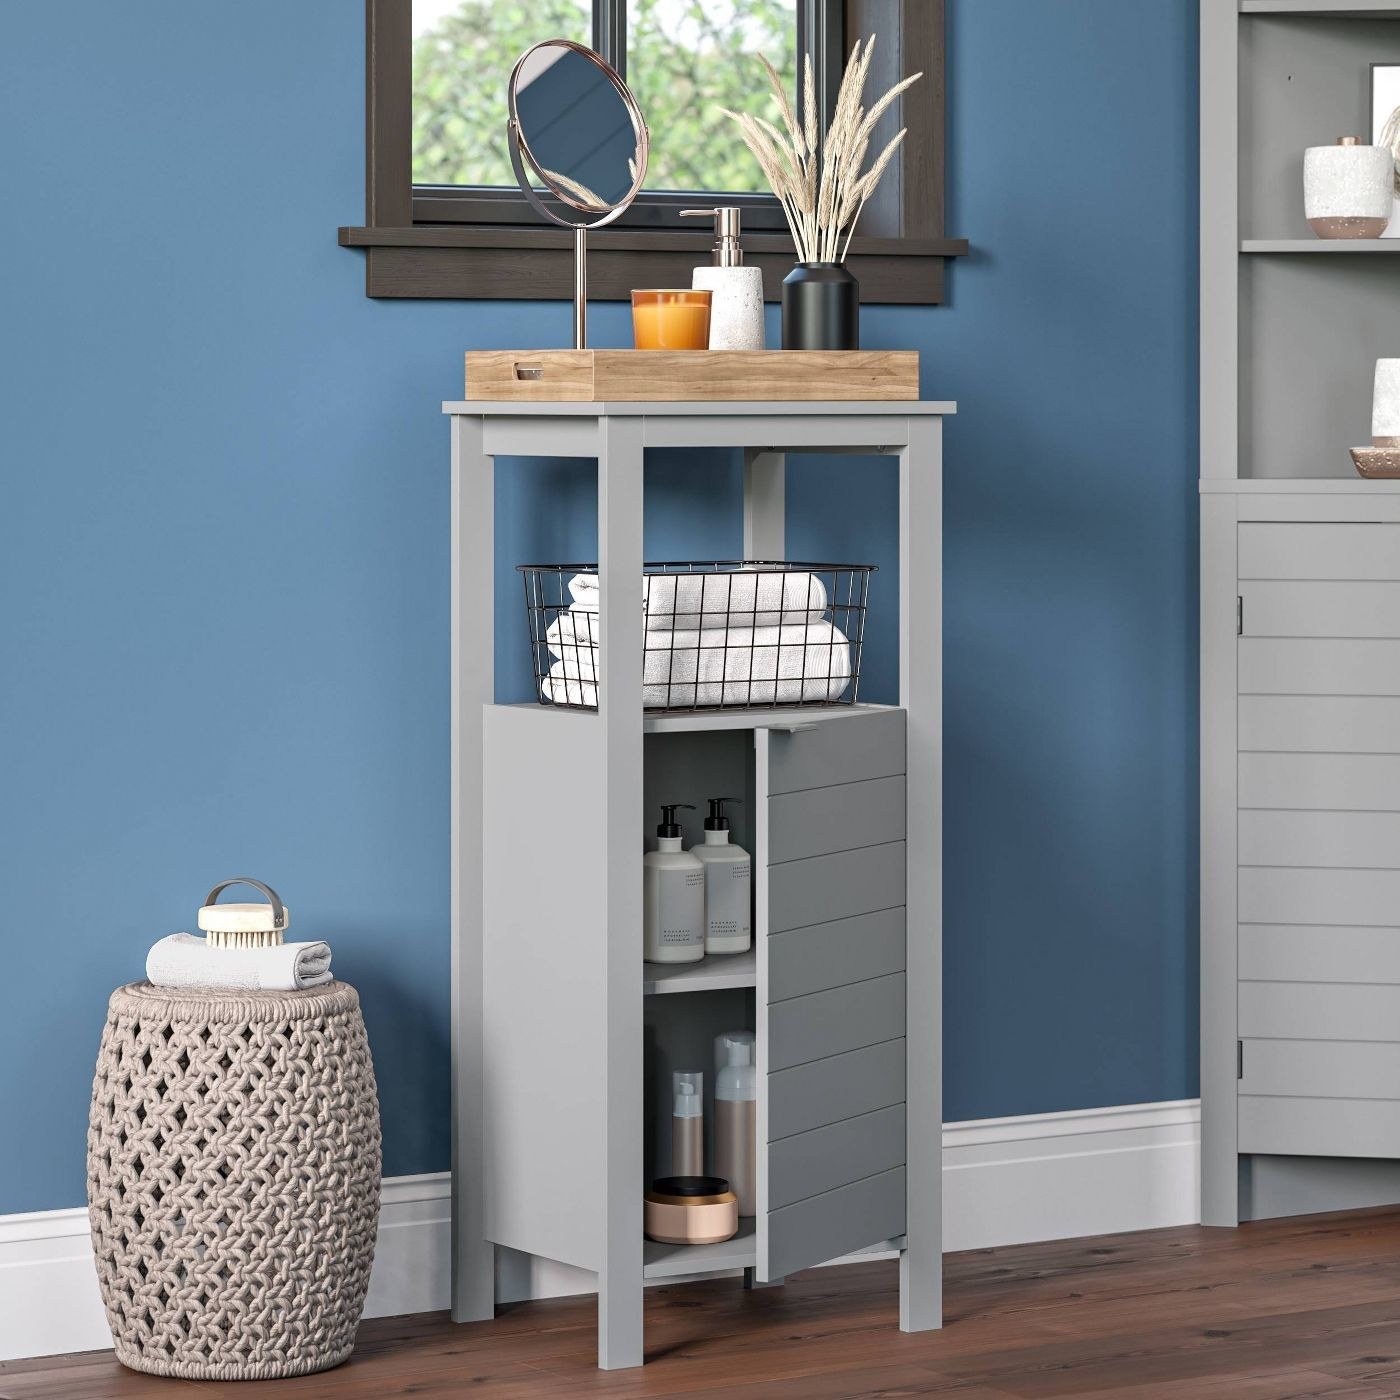 The gray single door cabinet